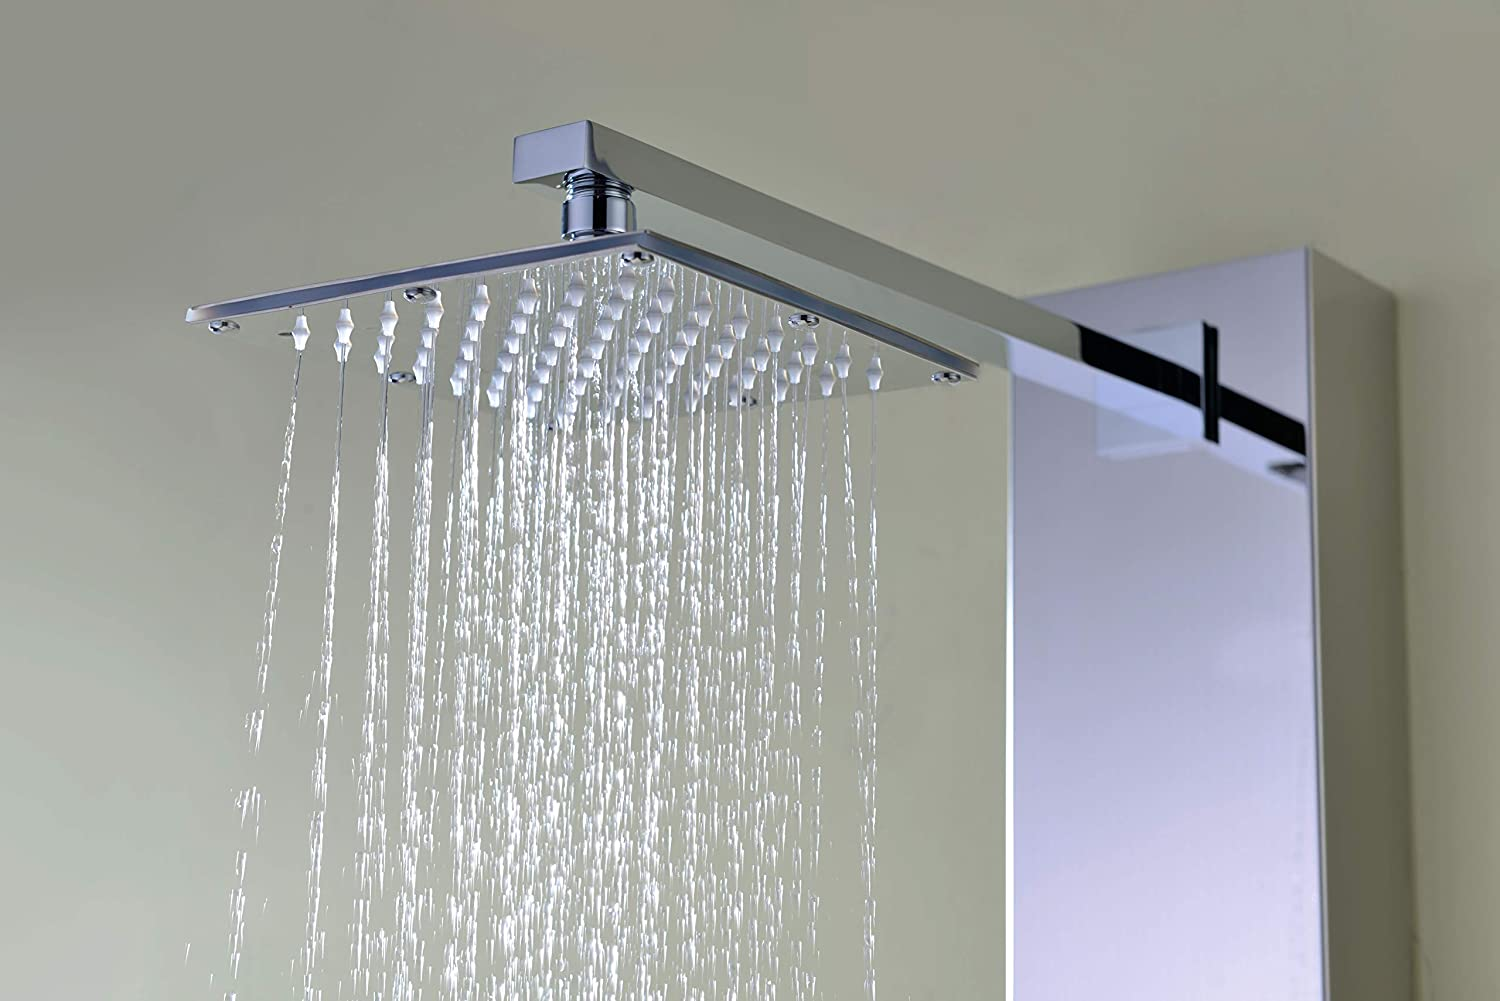 ANZZI Lann Body Massage 3 Jetted Shower Panel System | Waterfall Shower Head Multi Function Shower Tower | Polished Chrome Stainless Steel Shower Panels with Jet and Rainfall and Handheld | SP-AZ015 61WWTR9ujaL